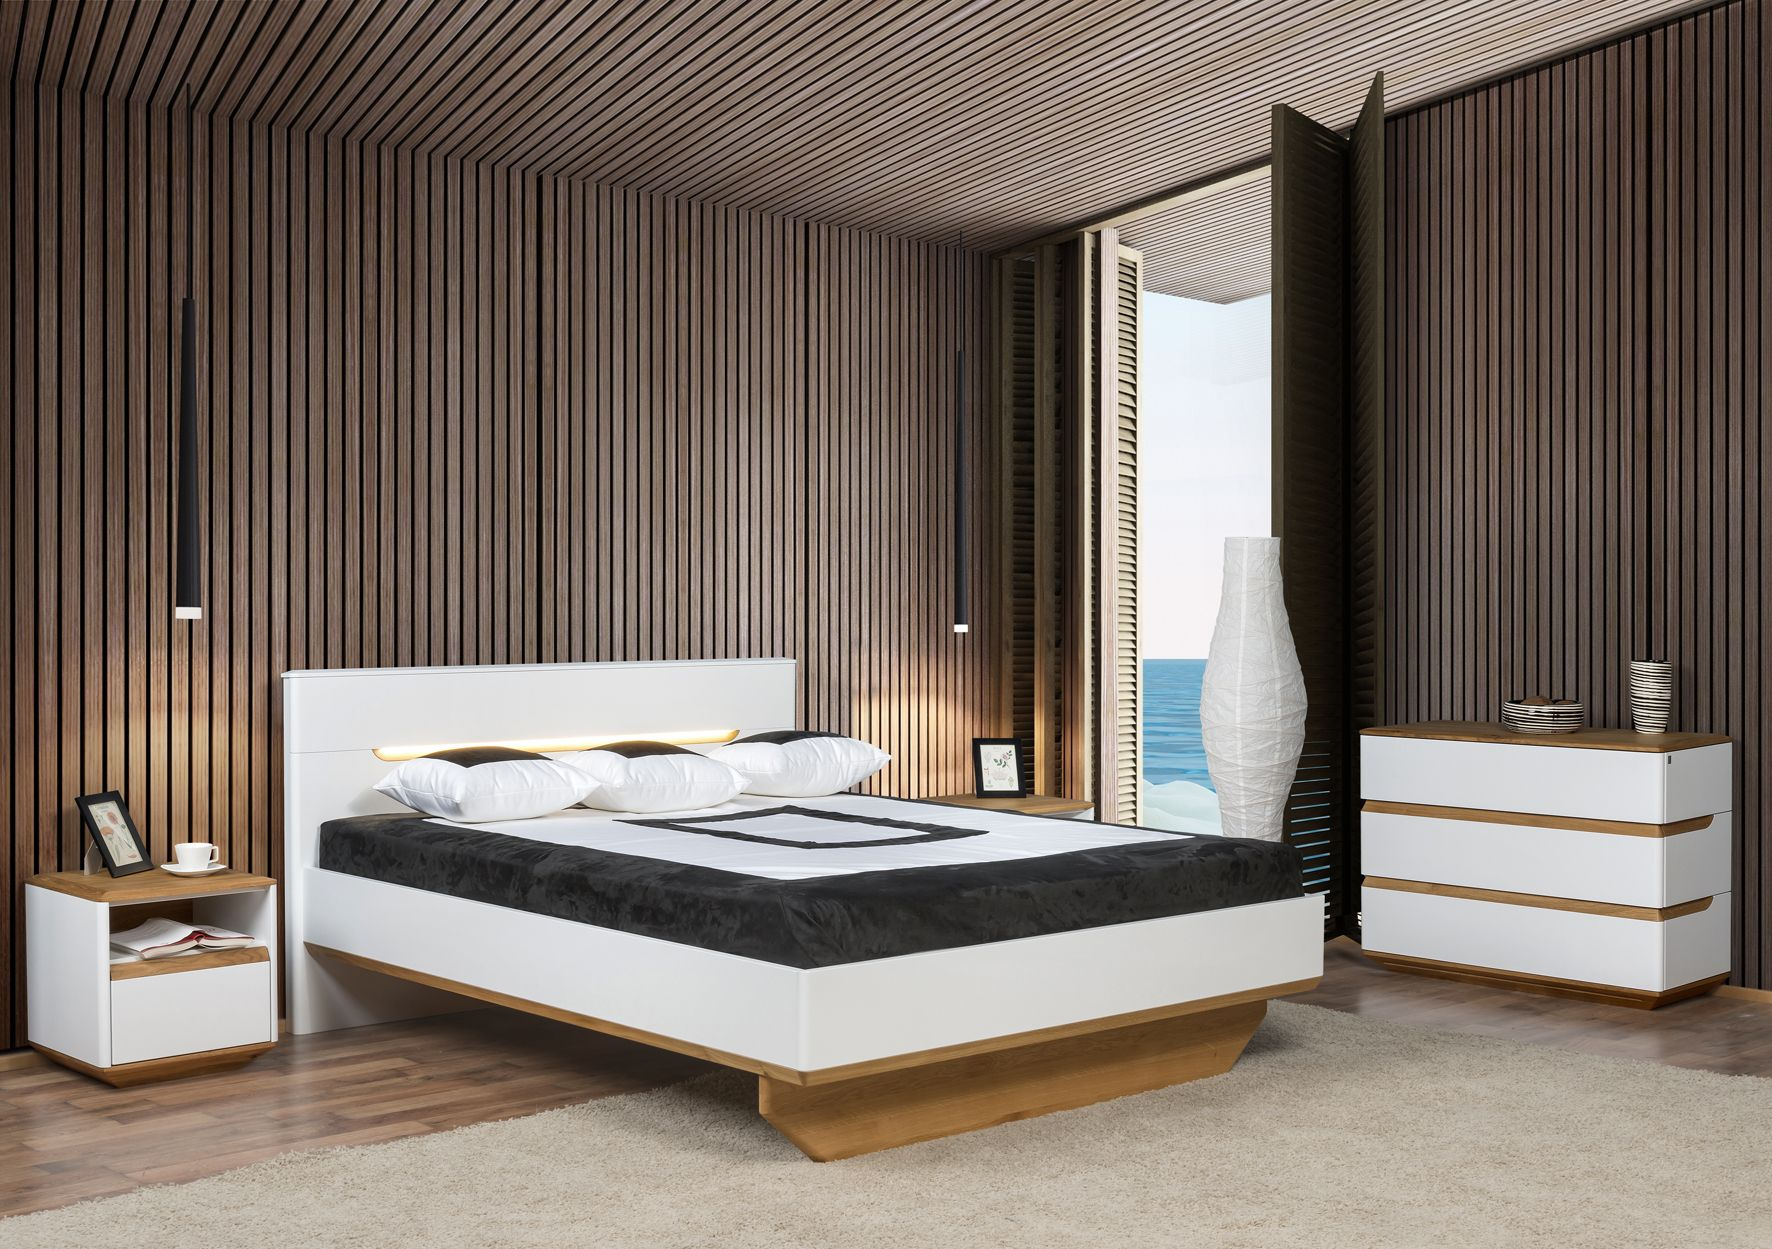 Zebra Home Concept   Bedroom Decoration Idea From Klose #bedroom  #KloseFurniture #woodenbed #. NaturmaterialienSchlafzimmer DesignsMach ...